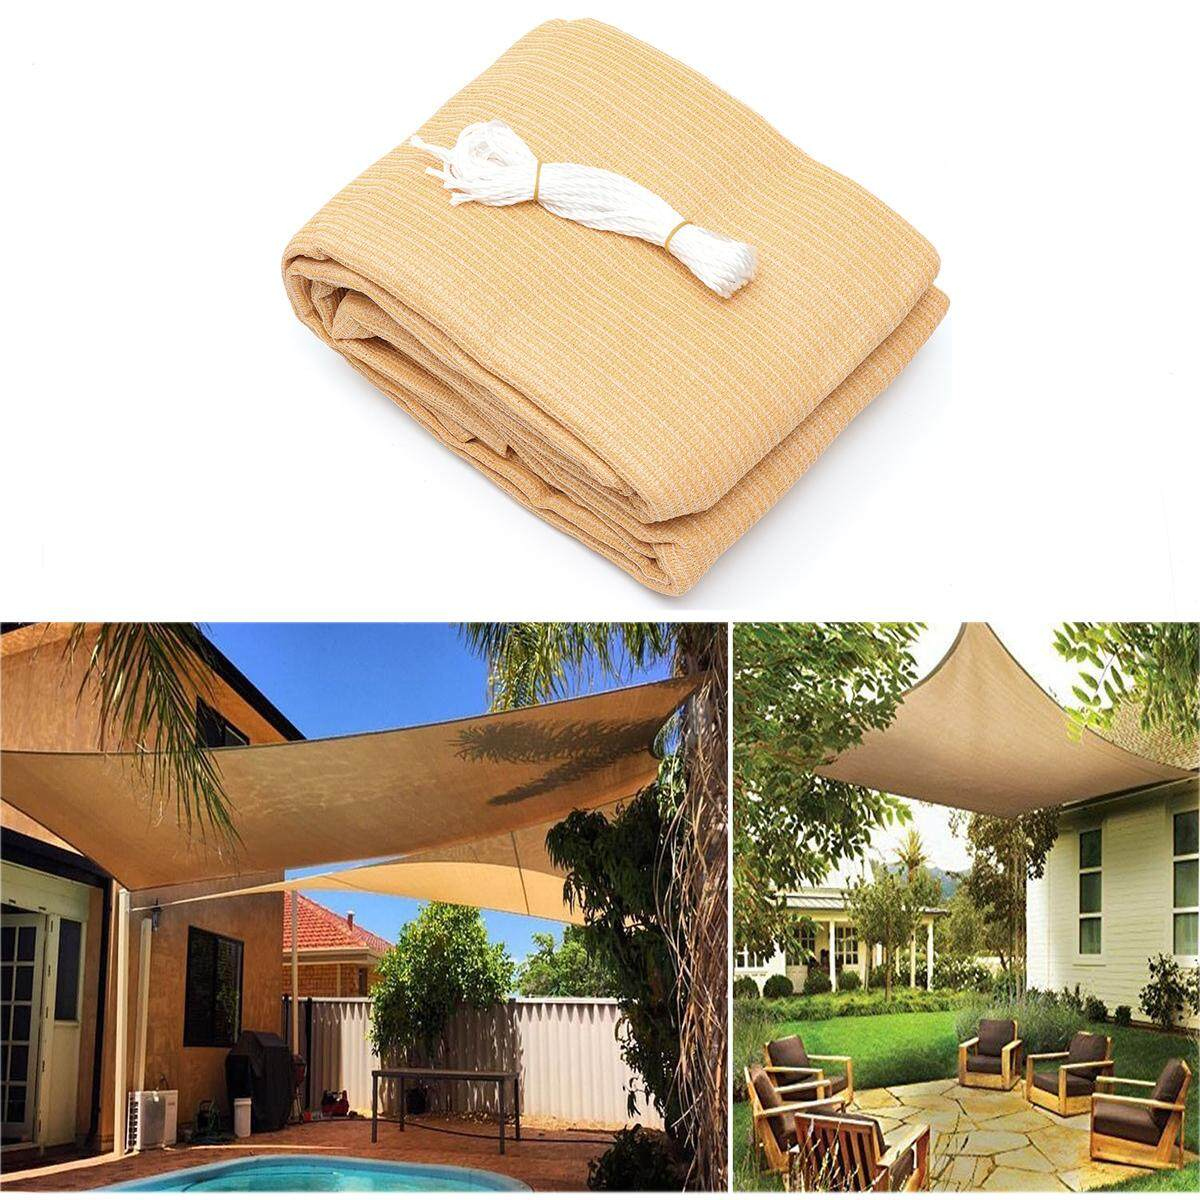 3*4m 280gsm HDPE Sun Shade Sail Cloth Canopy Awning Shelter Outdoor